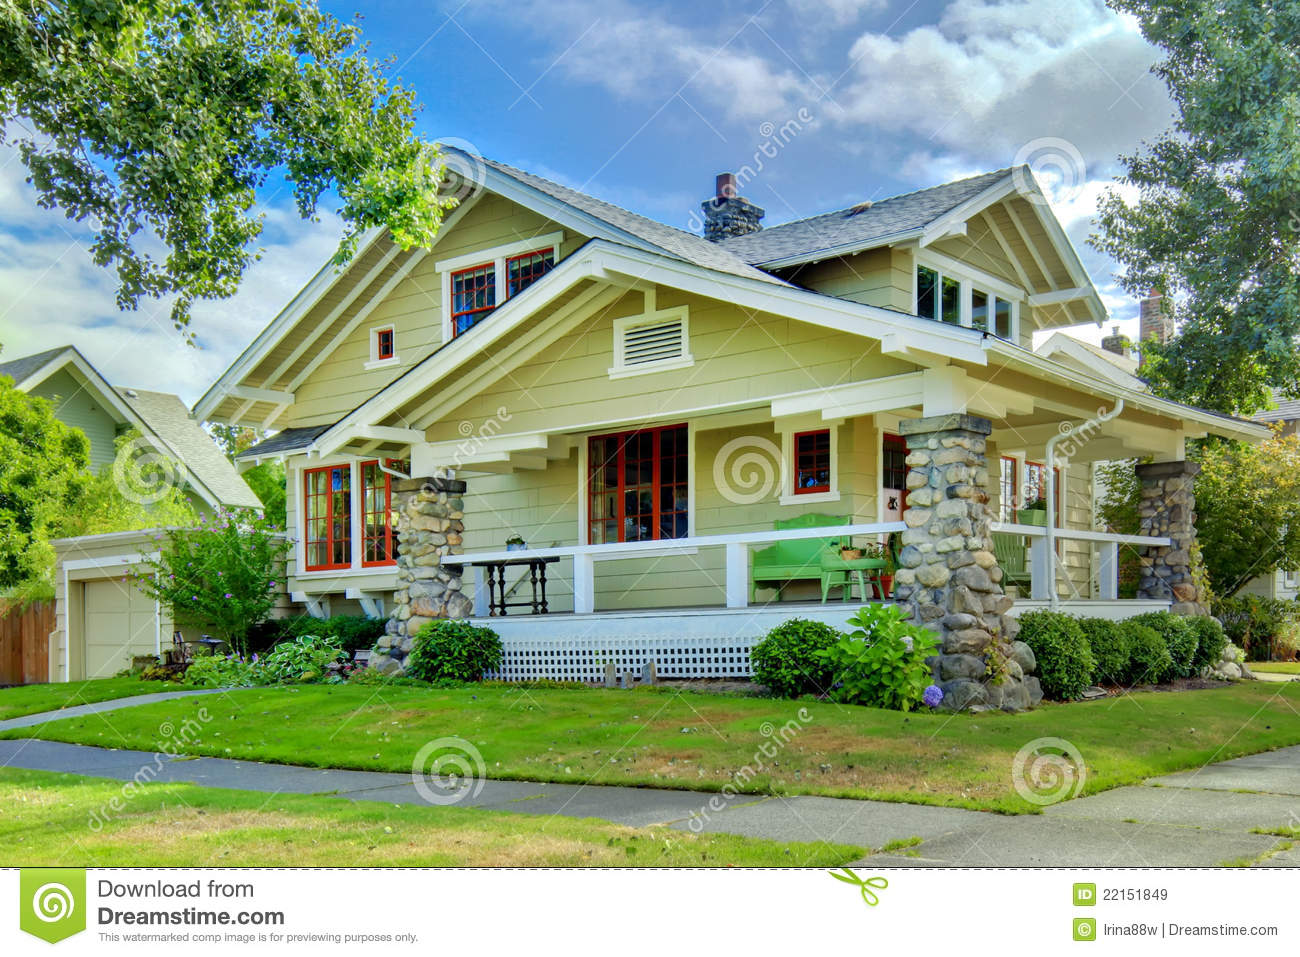 Green old craftsman style home with covered porch royalty for Craftsman style home builders